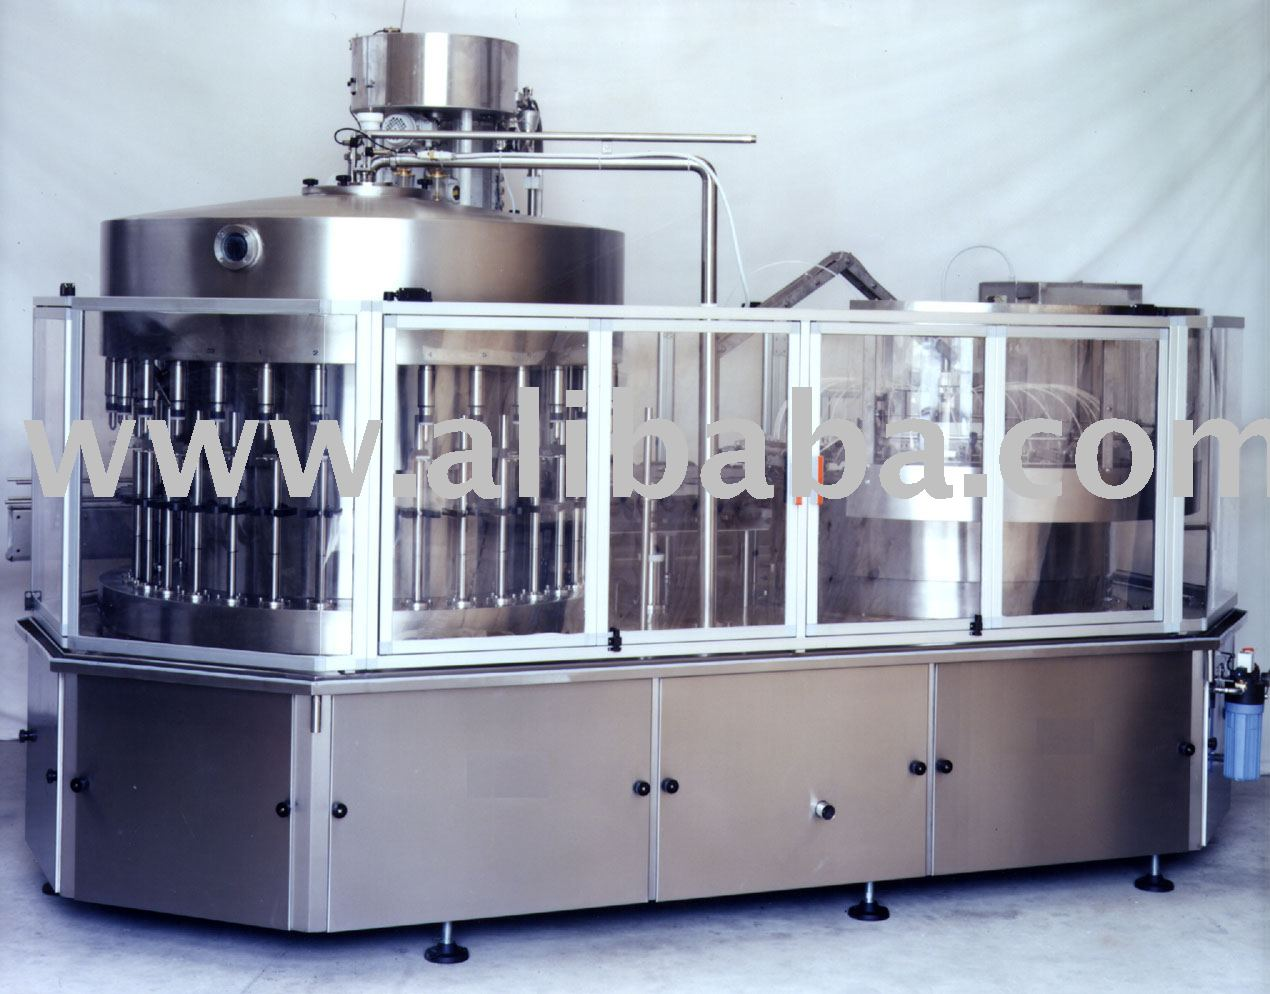 SPECIAL FILLING MACHINES FROM SMC Italy